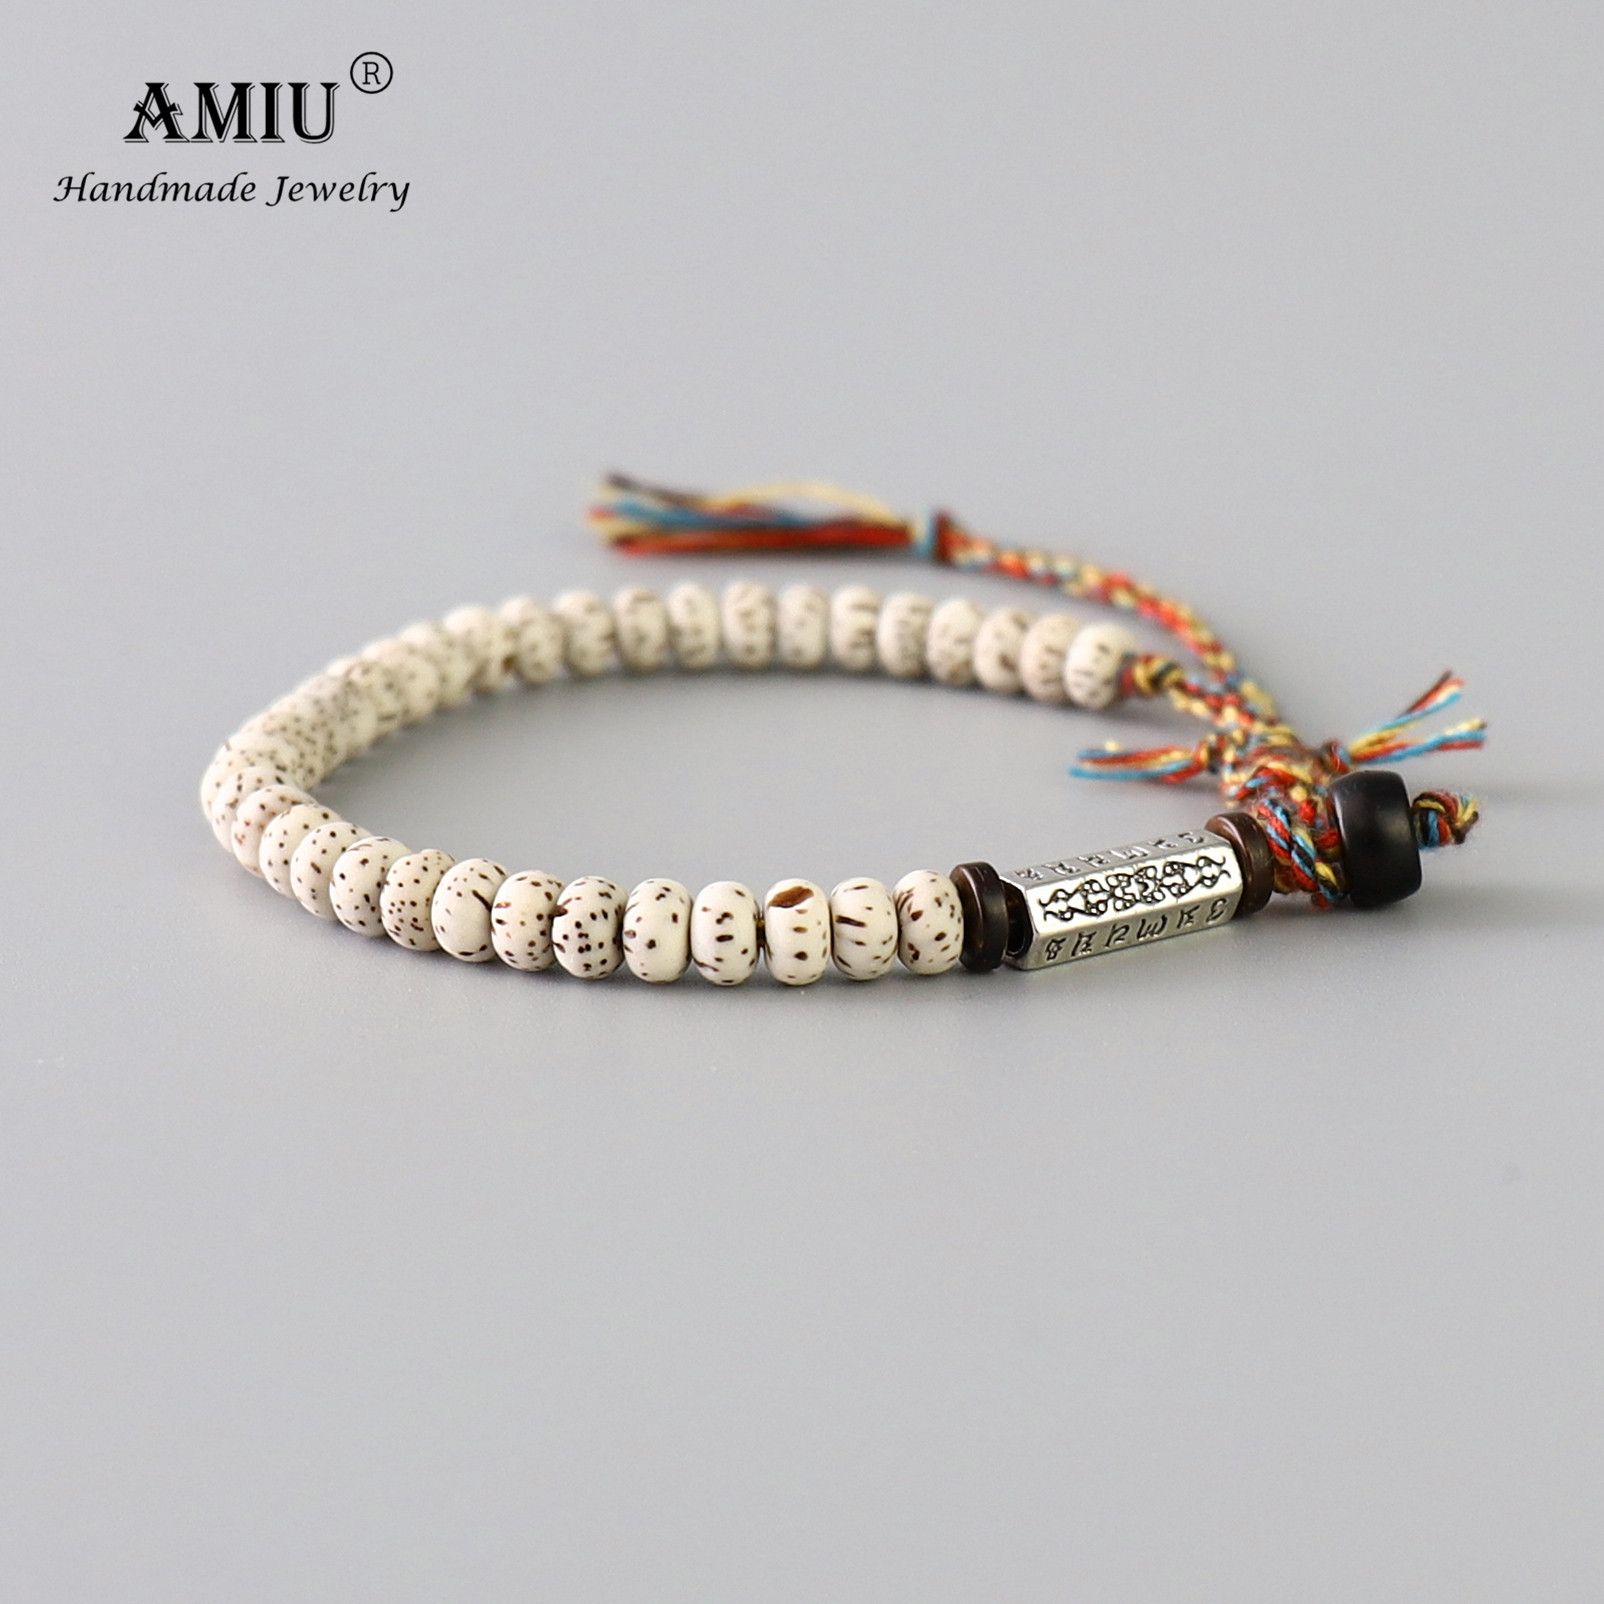 AMIU Tibetan buddhist Braided Cotton Thread Lucky Knots bracelet Natural Bodhi Beads Carved Amulet Handmade Bracelet For Men